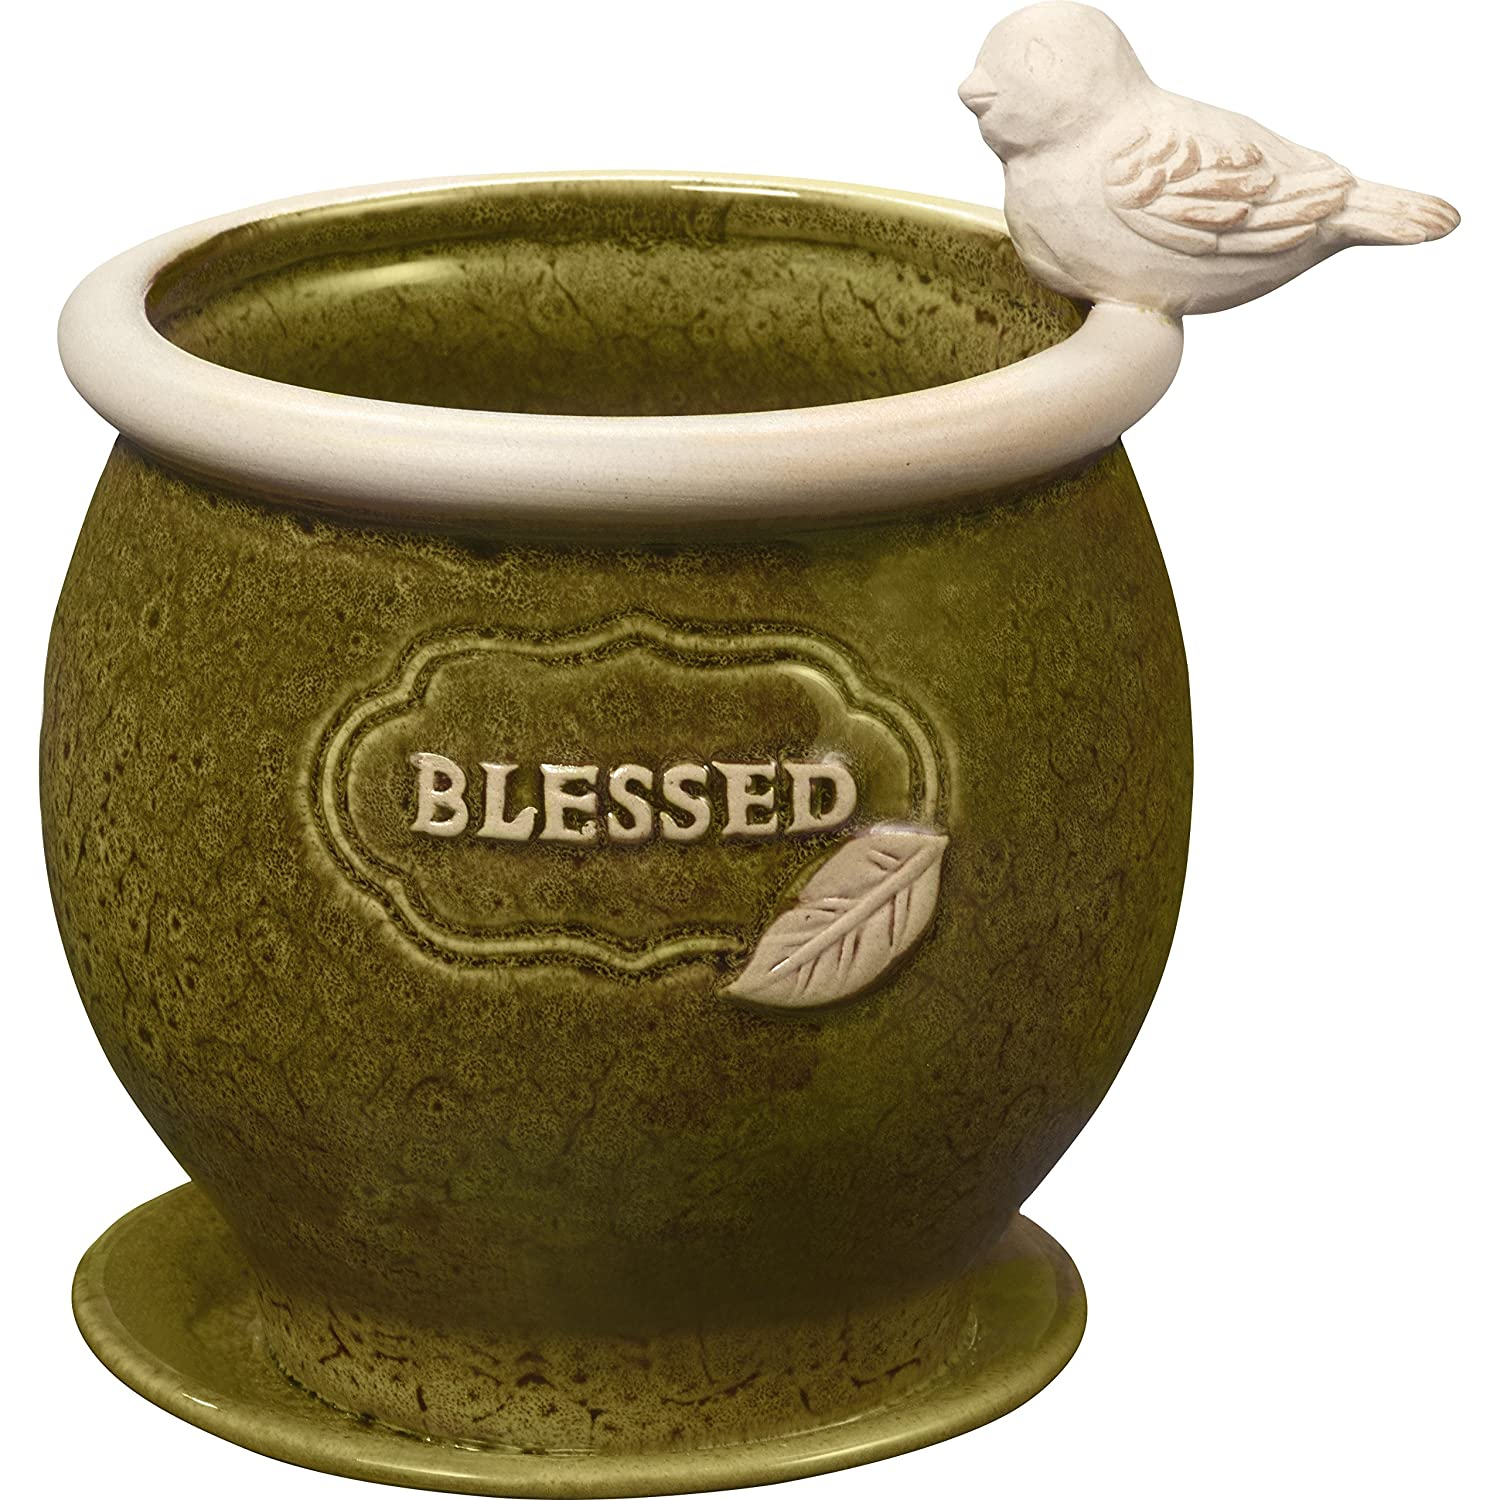 Garden Gifts by Precious Moments Blessed Olive Green Ceramic Garden Or Deck Planter Pot 5-Inch Tall By 4-Inch Diameter 185015